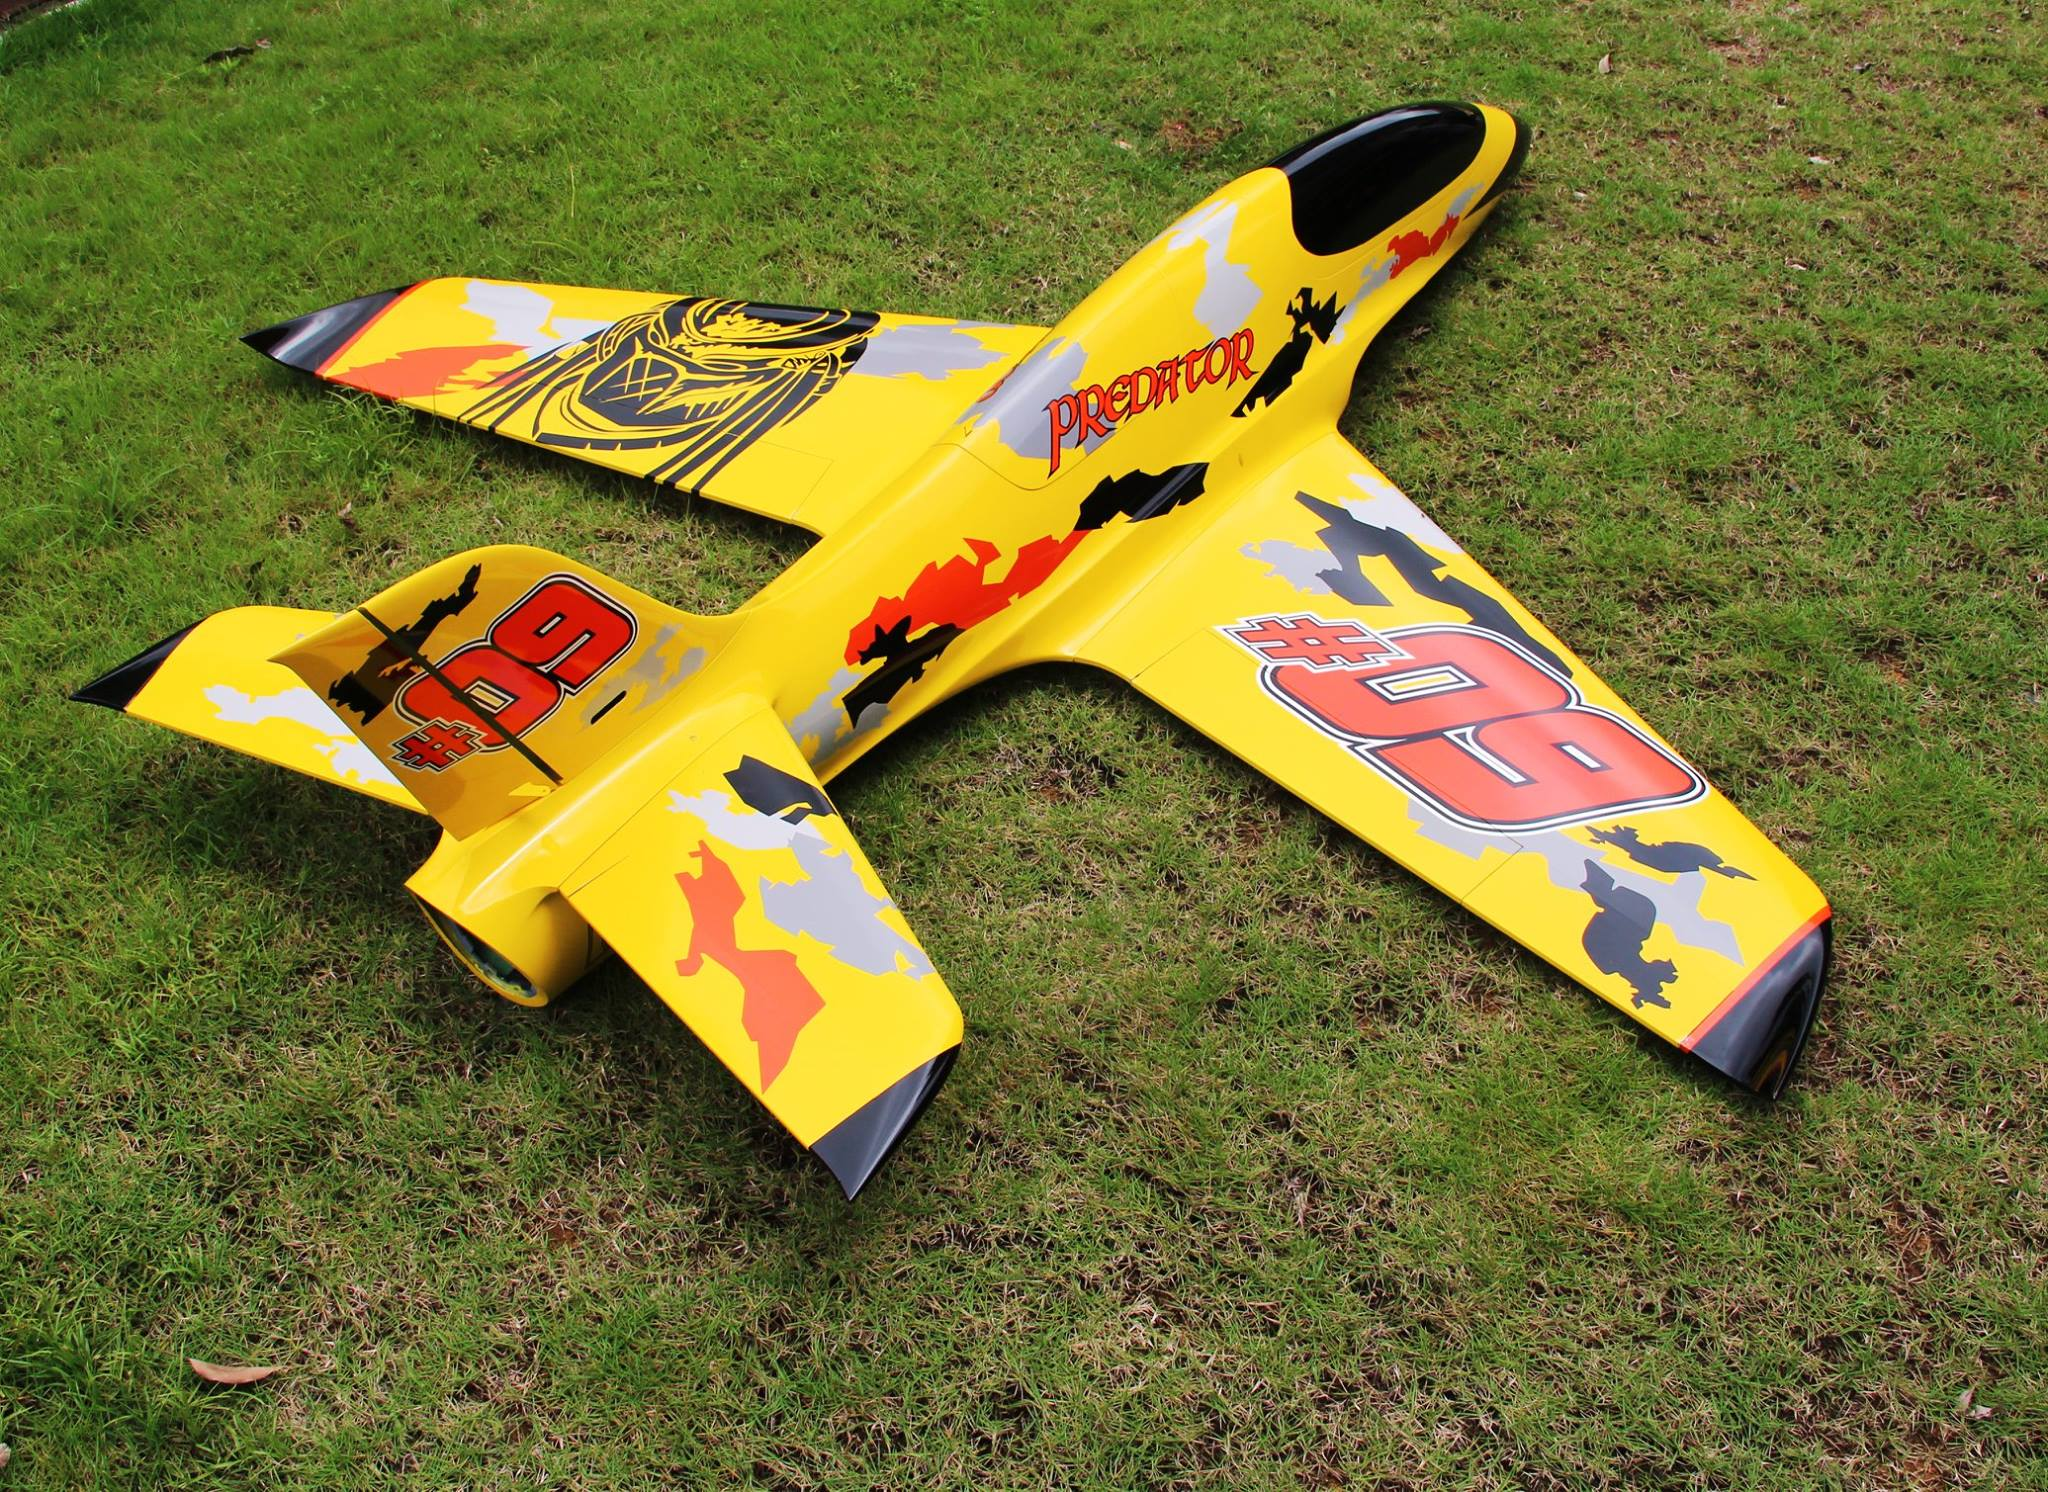 Pilot rc 2 2m Predator jet 04, retracts,air trap,tail pipe